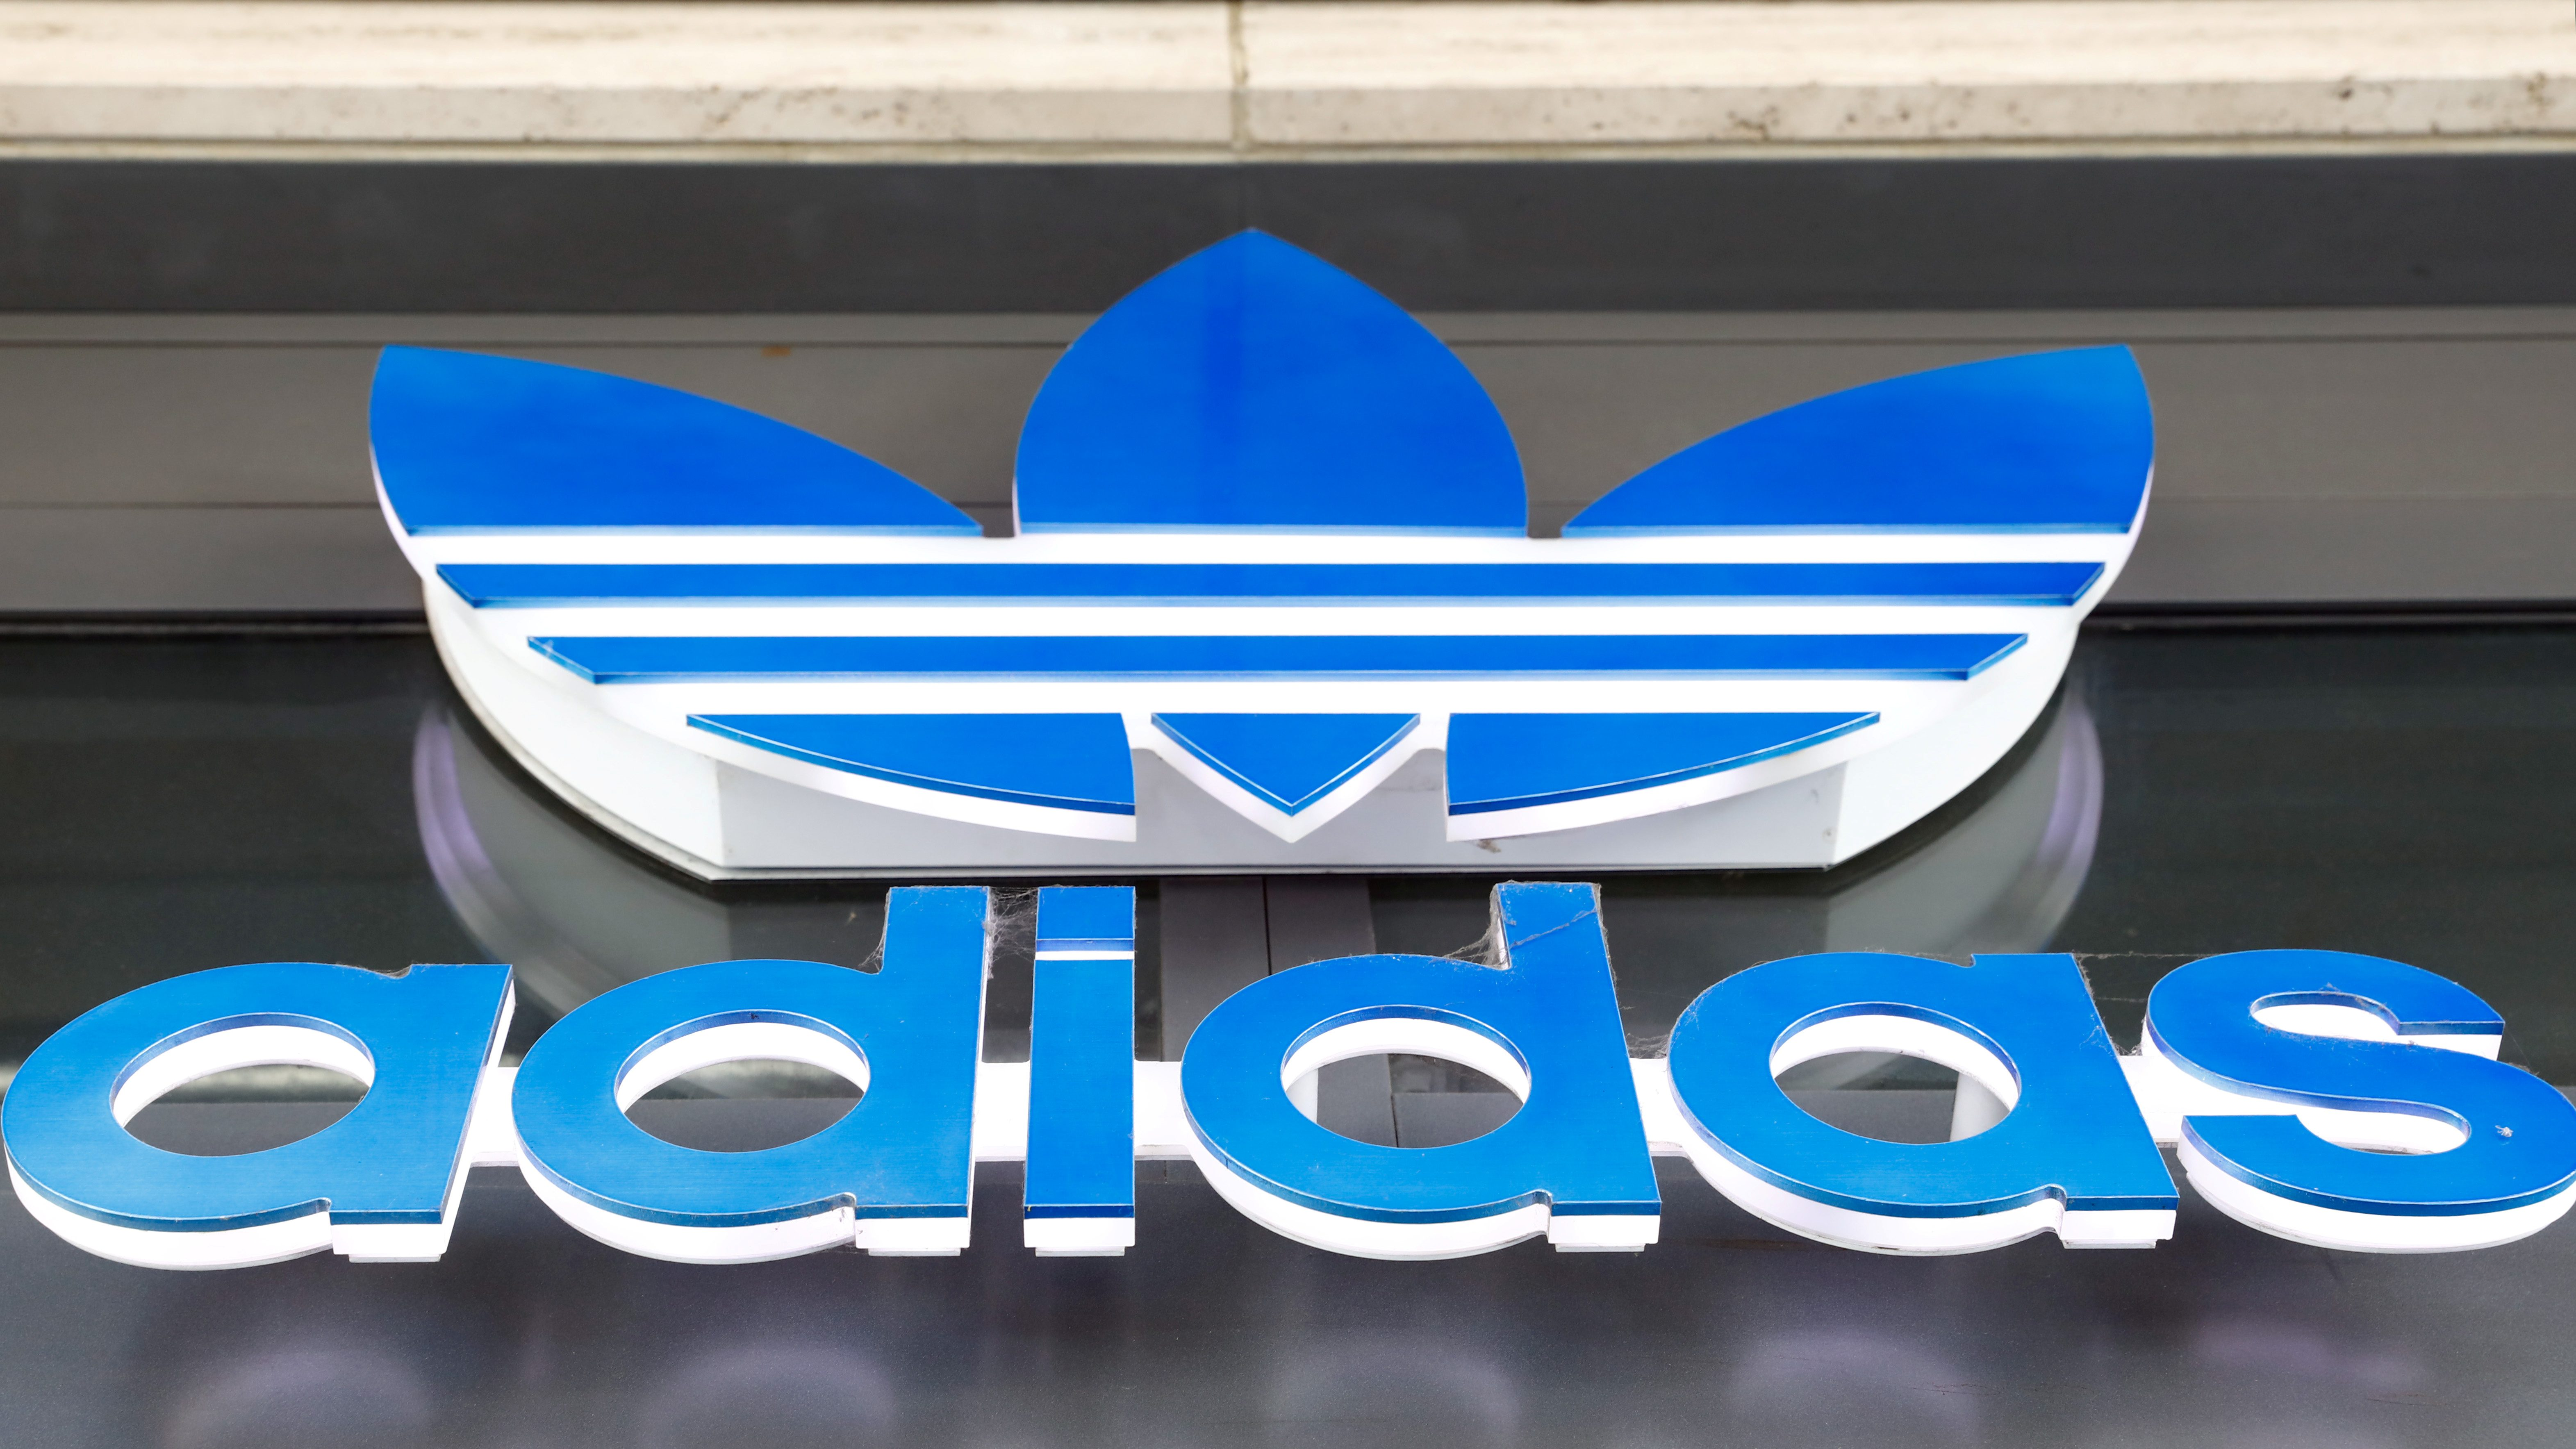 The logo above an Adidas shop in Berlin, Germany